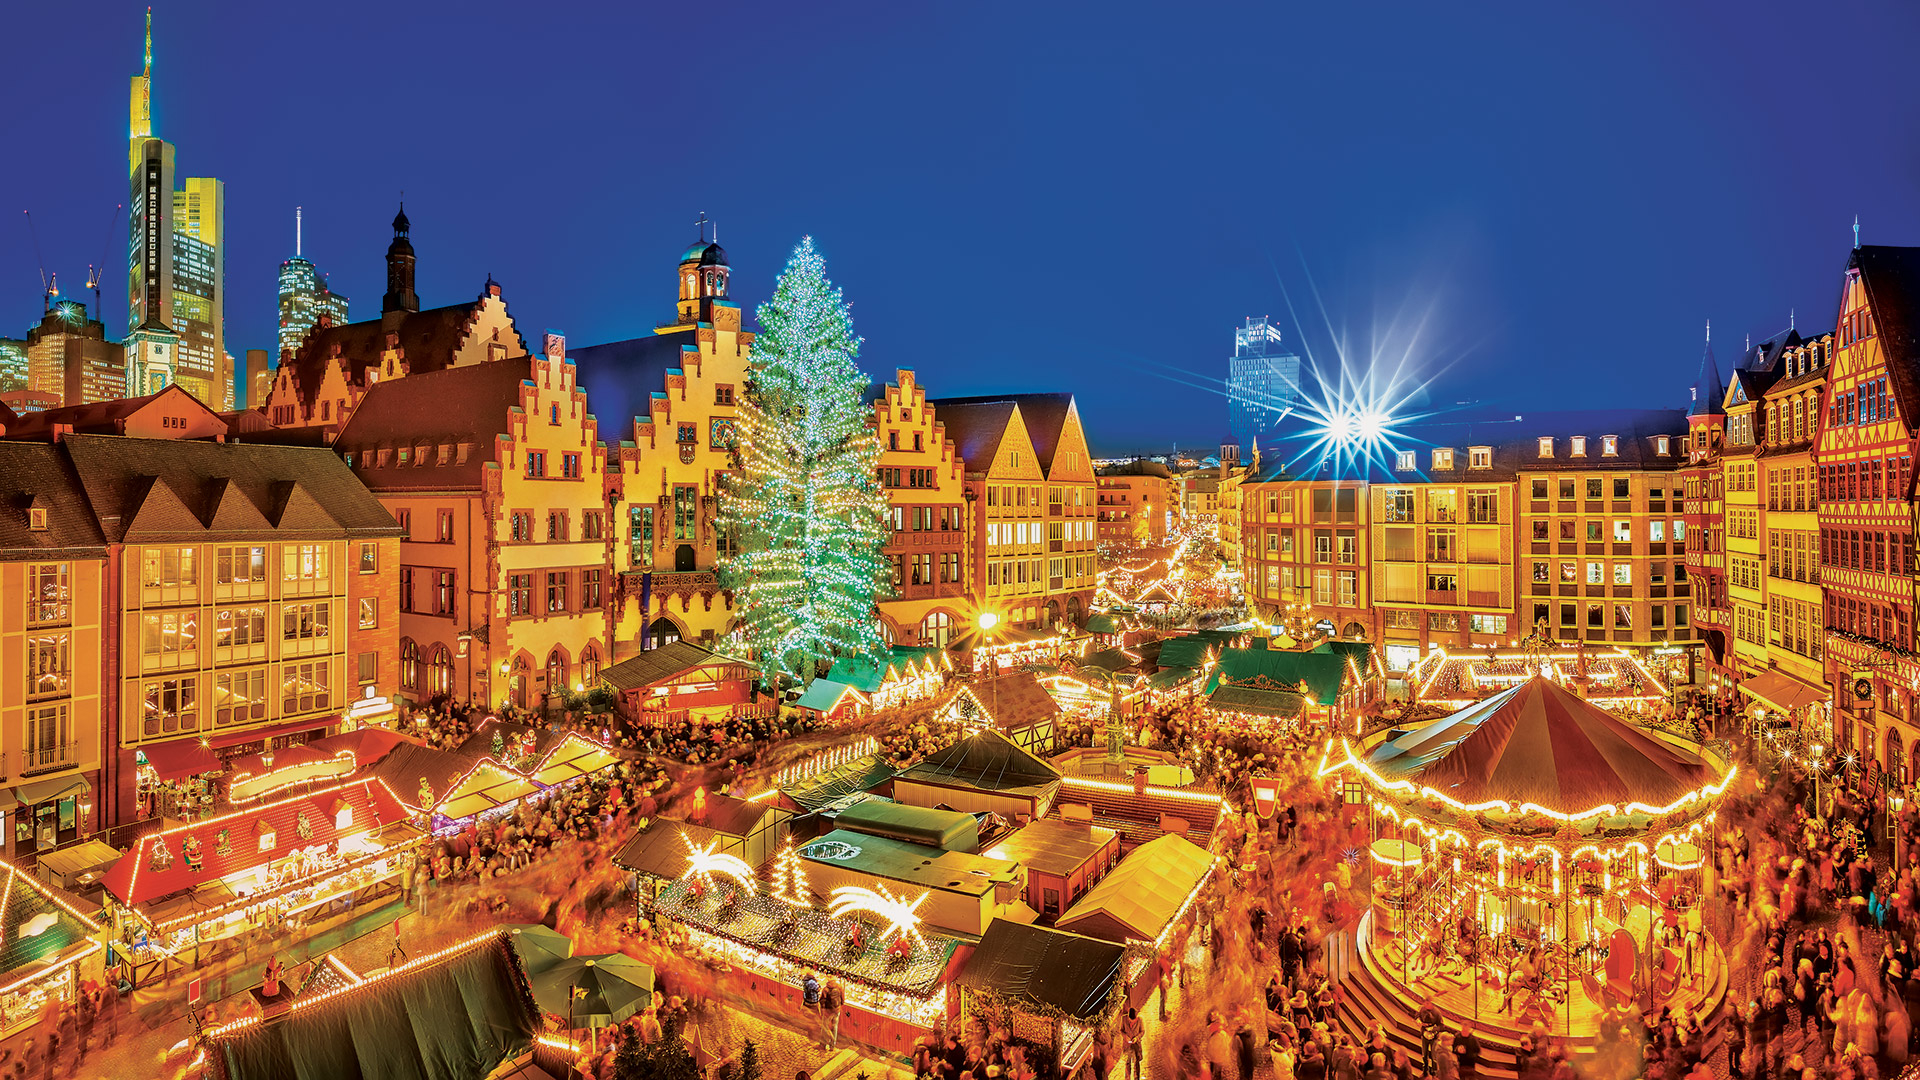 Nuremberg Christmas Market.Classic Christmas Markets Nuremberg To Frankfurt 2019 From Nuremberg To Frankfurt Am Main